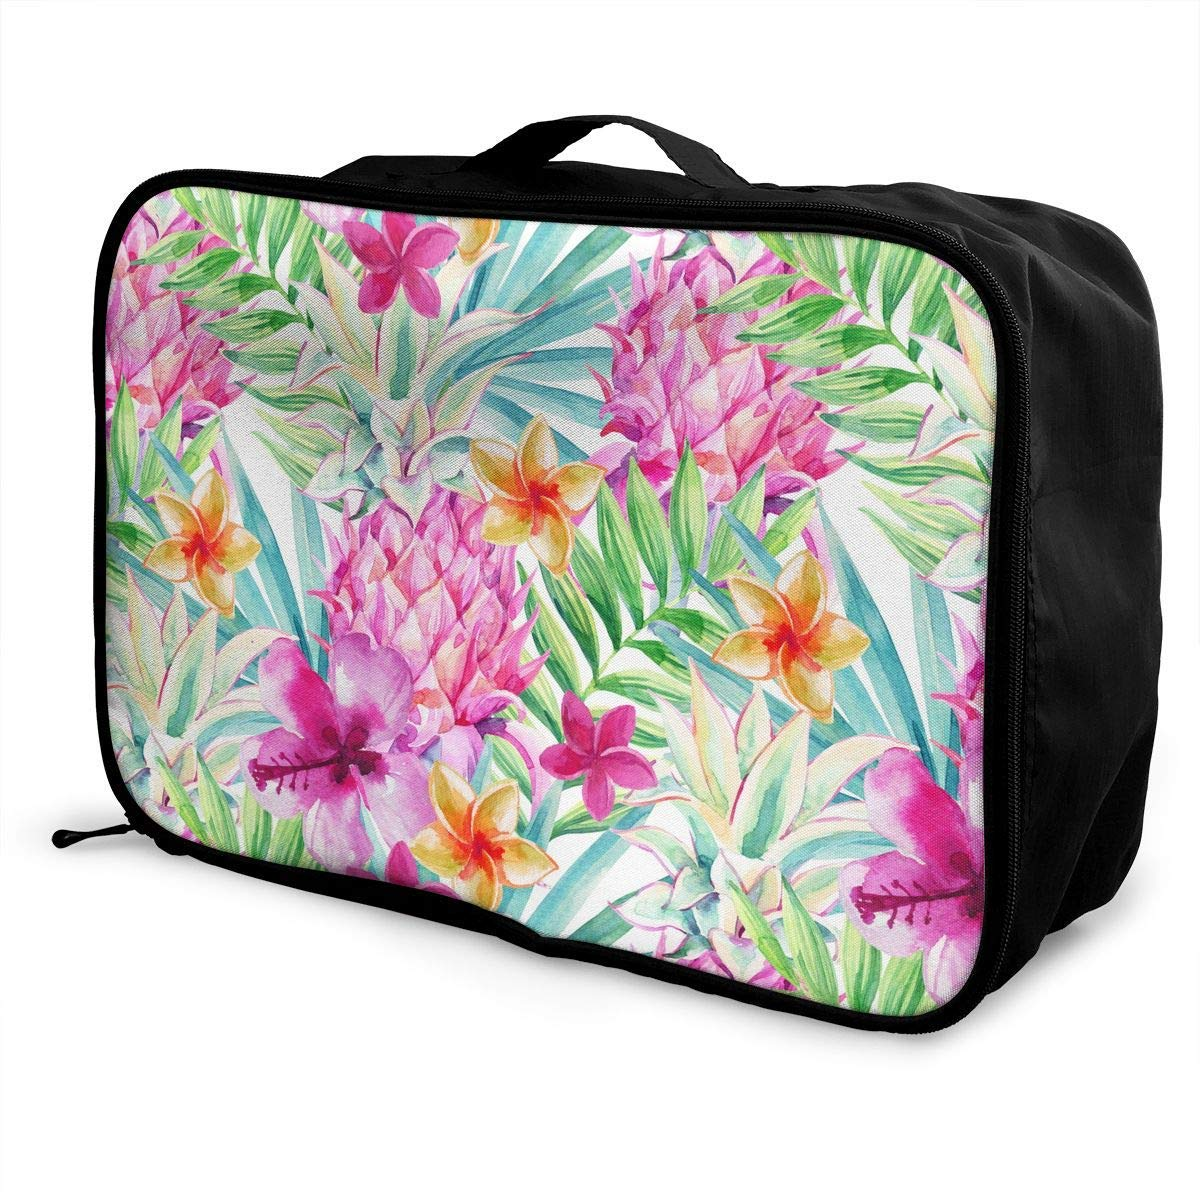 JTRVW Travel Luggage Trolley Bag Portable Lightweight Suitcases Duffle Tote Bag Handbag Pineapple With Palm Leaves And Flowers Pattern